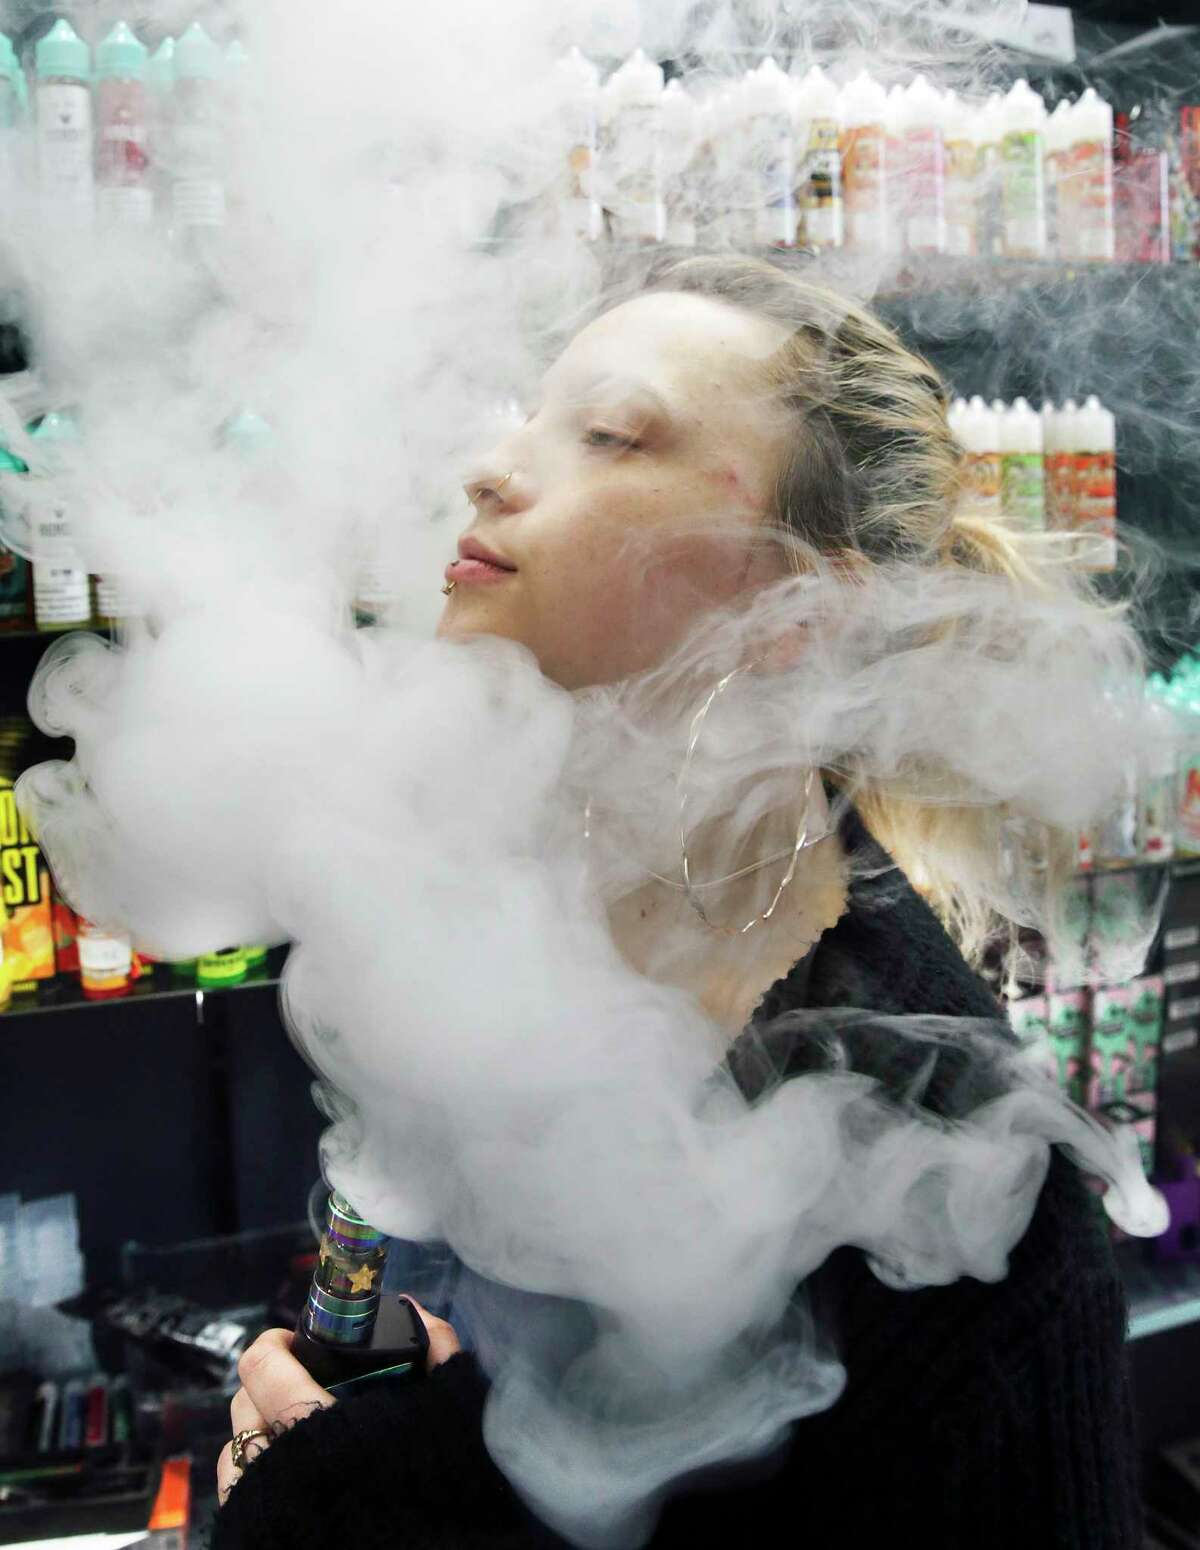 Claire Collingwood is surrounded in a cloud of vapor as she exhales after using a vaping device.